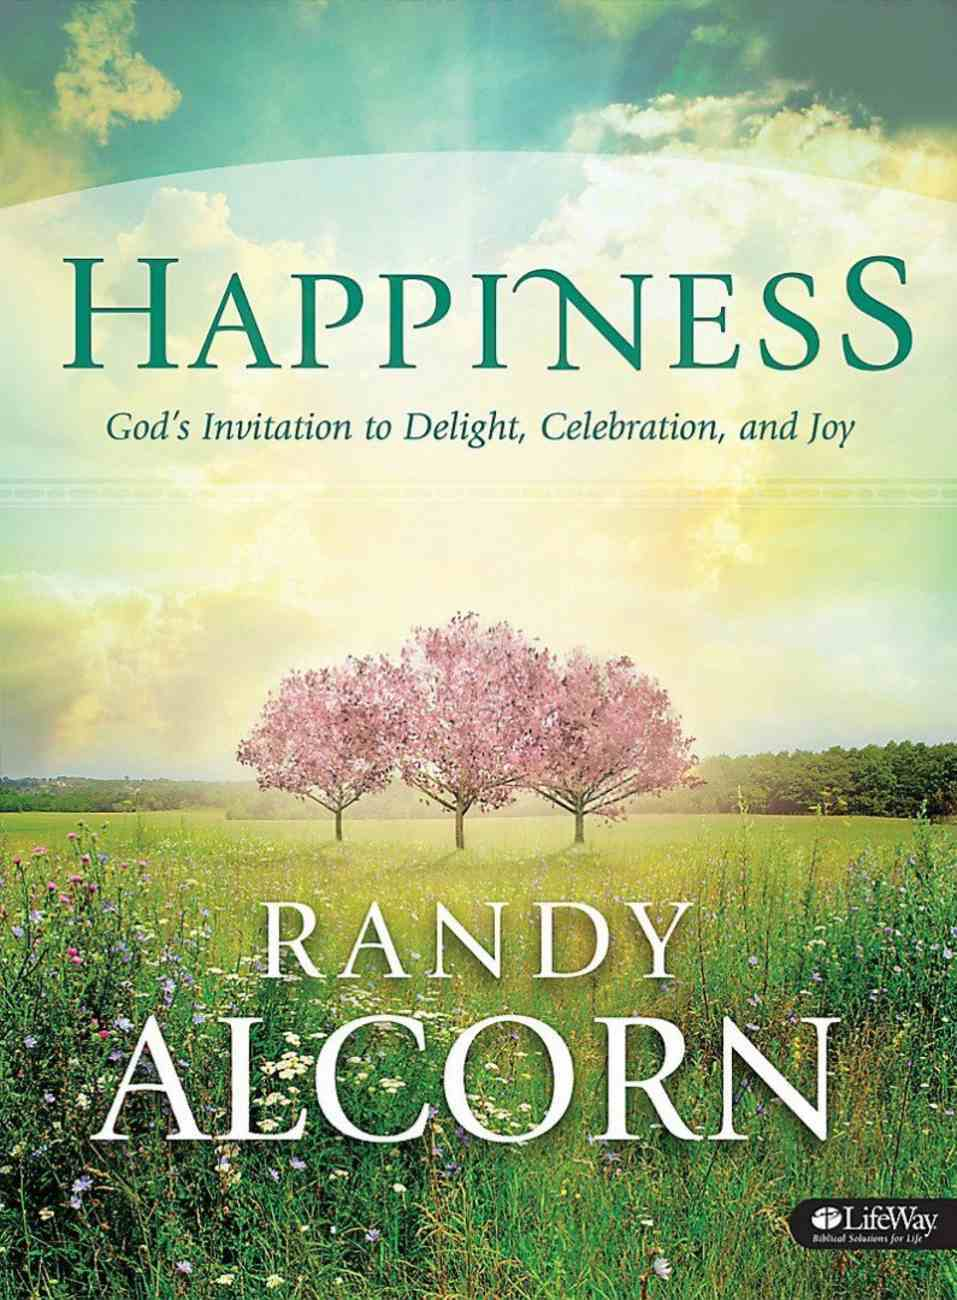 Happiness (2 Dvds) (Dvd Only Set) DVD